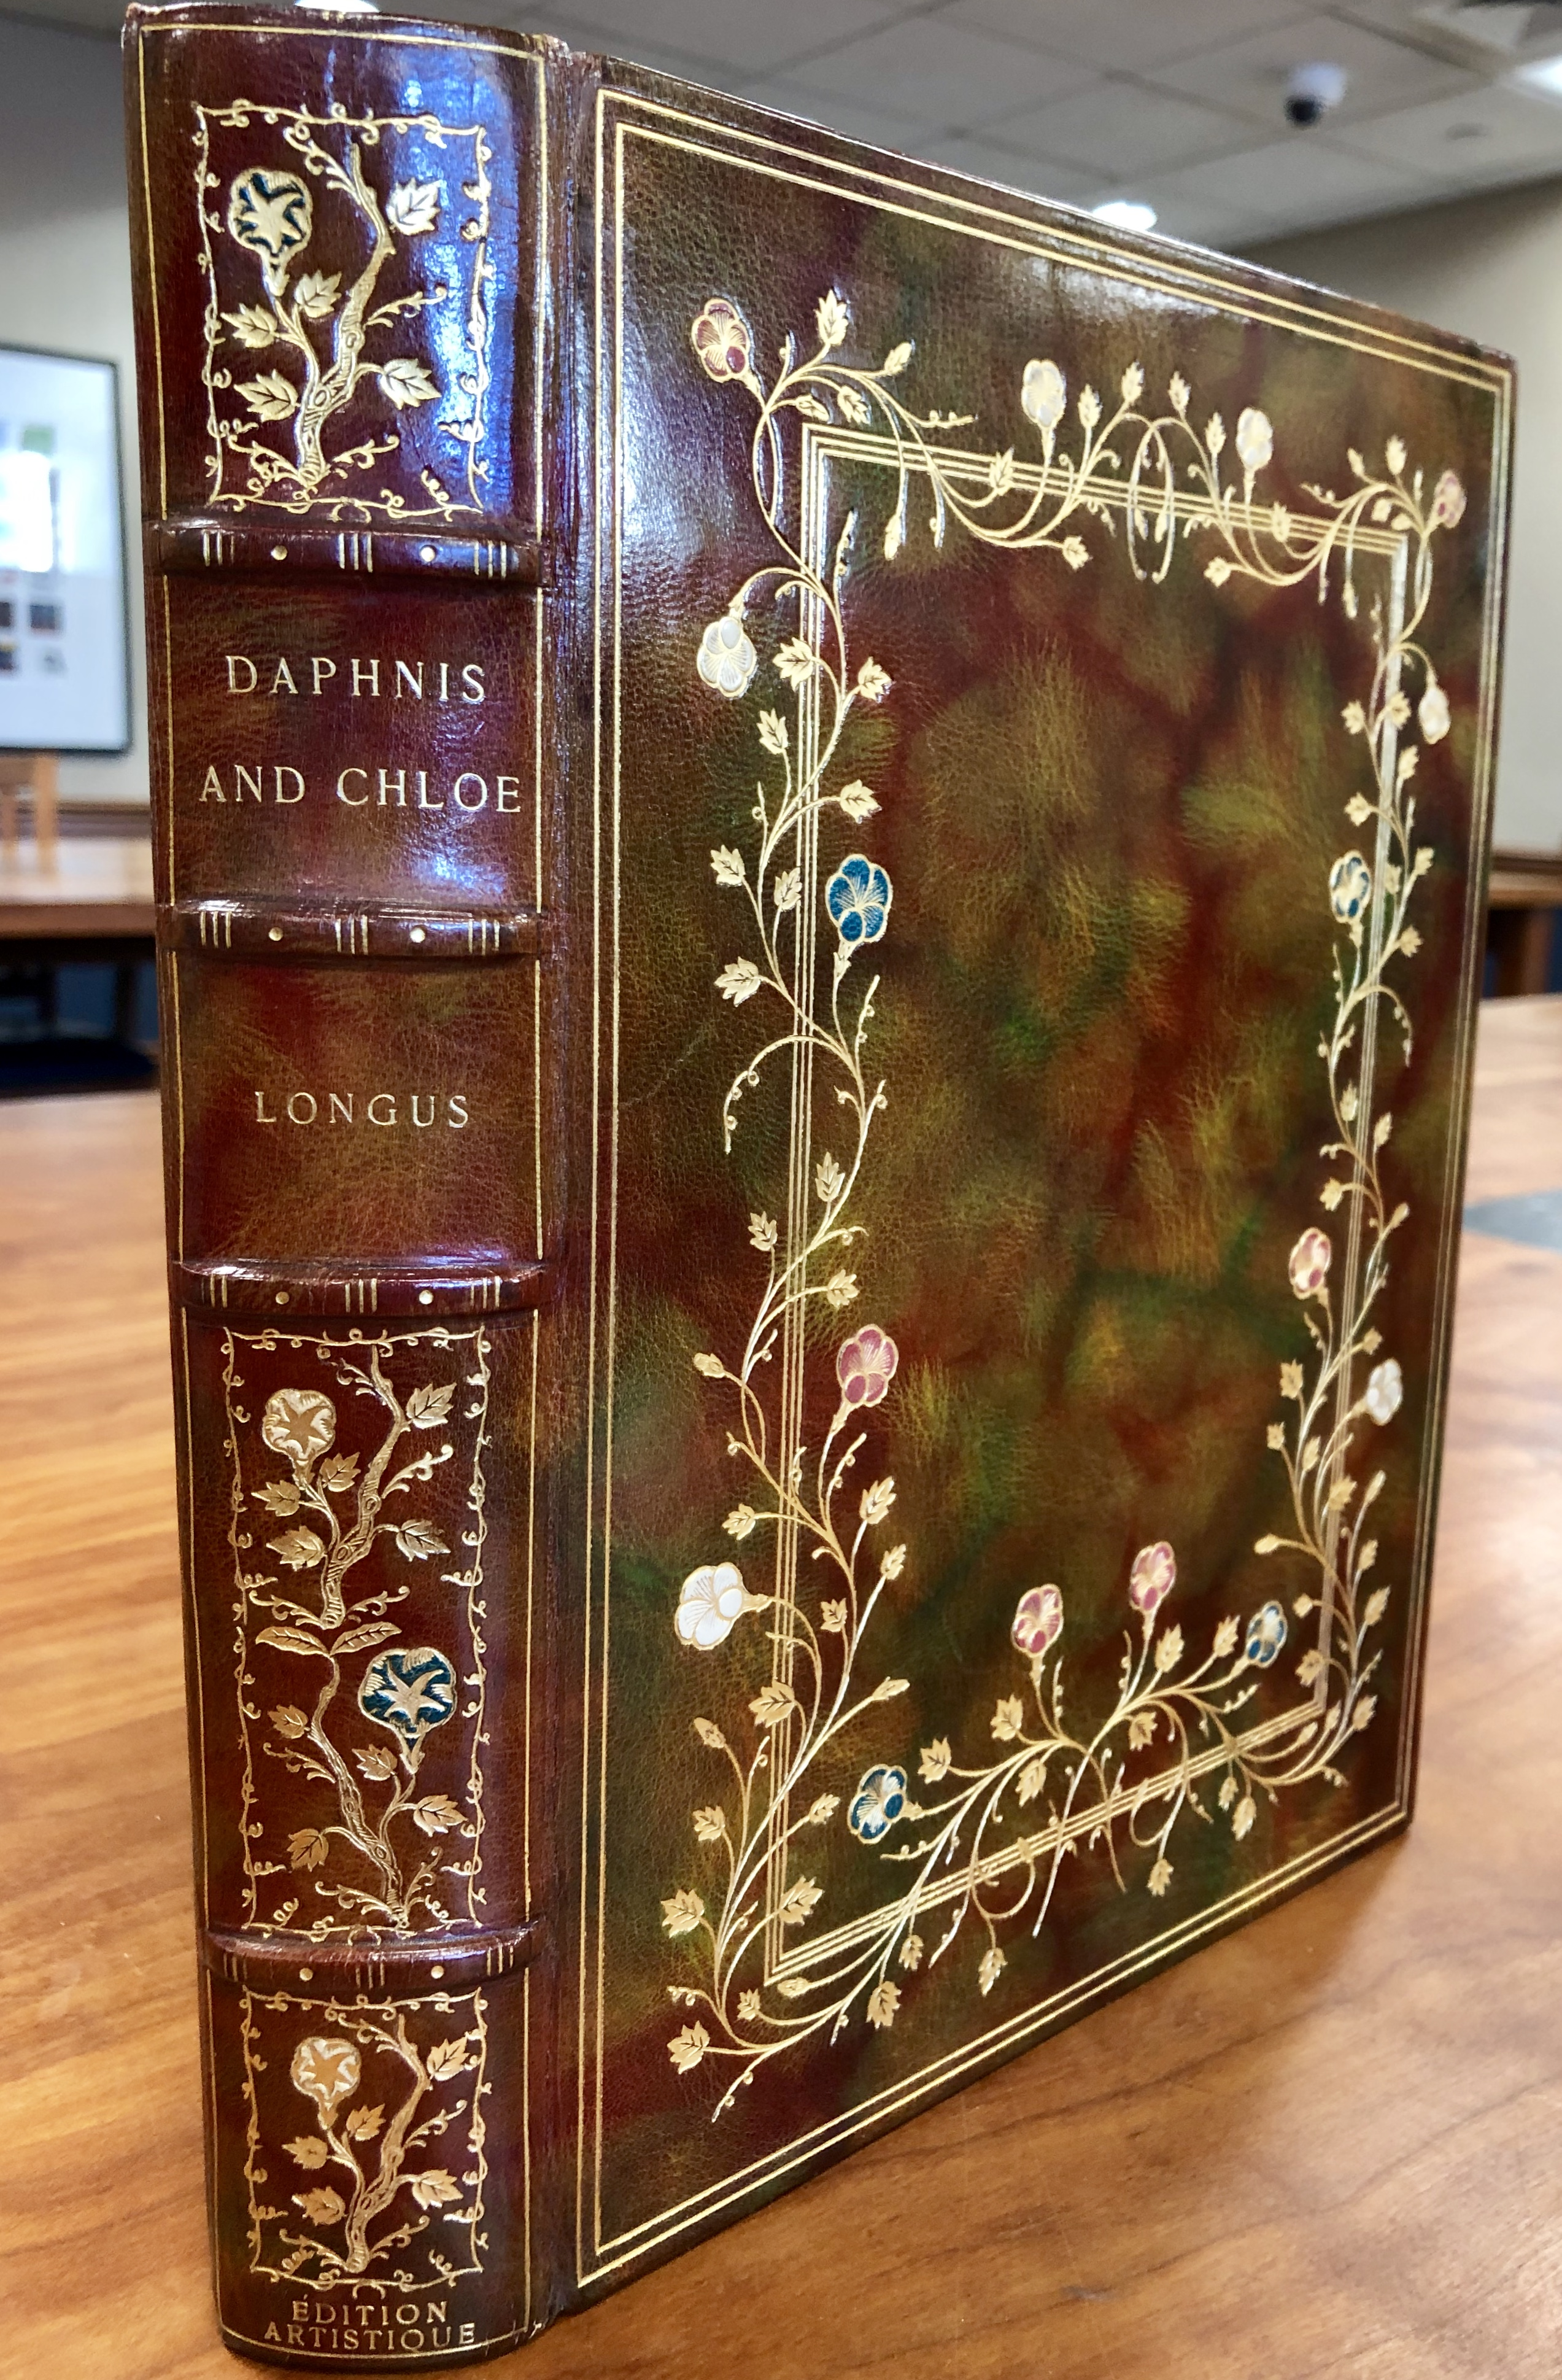 Daphnis and Chloe - book spine